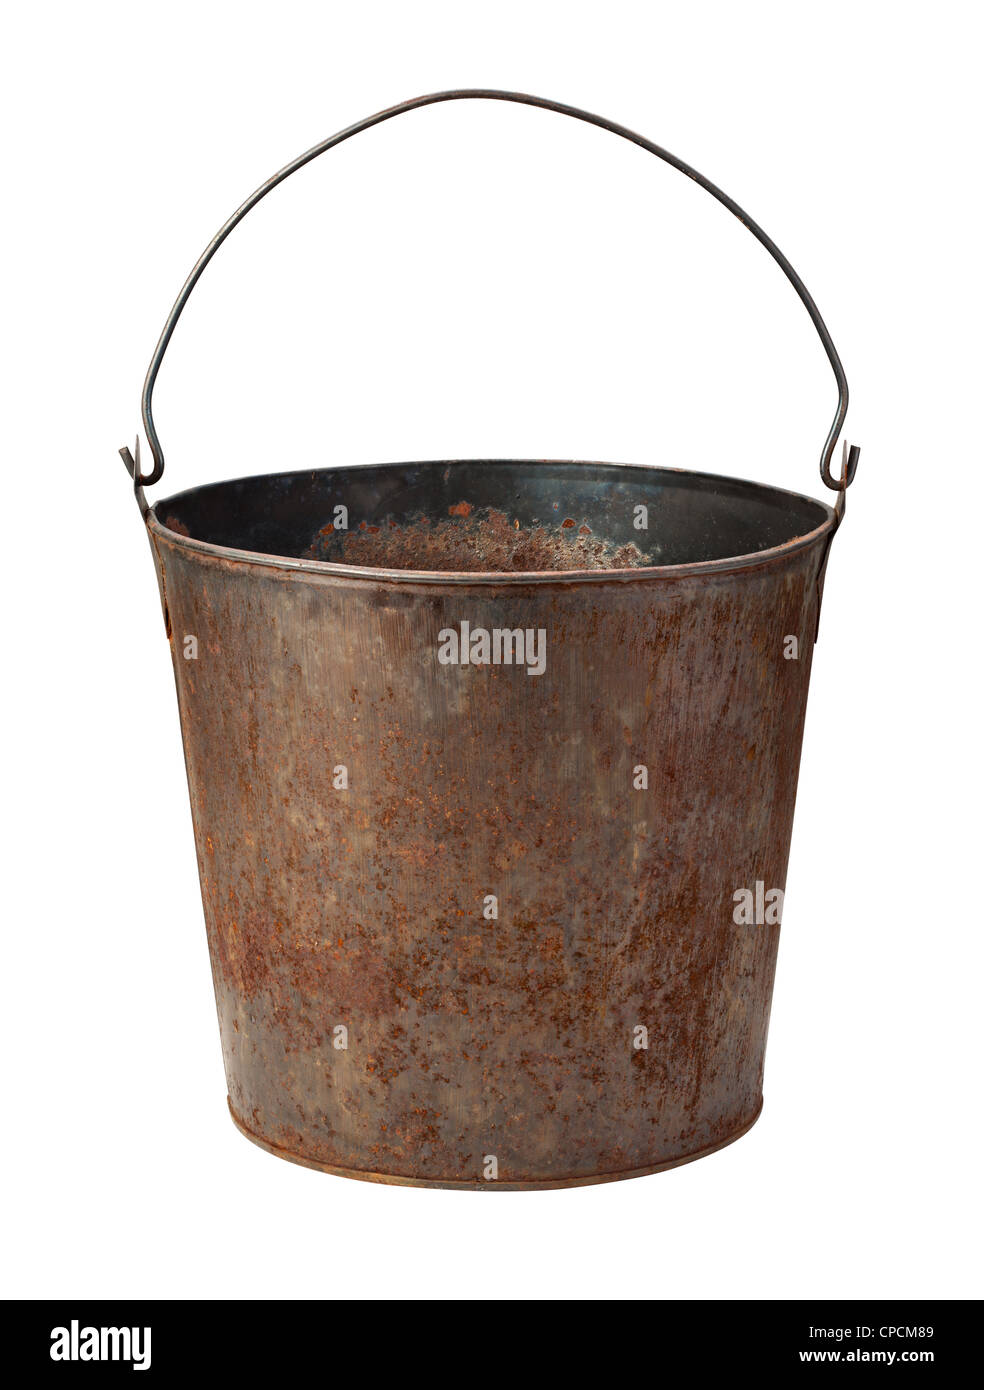 Old Rusty Bucket Isolated on a white background. - Stock Image